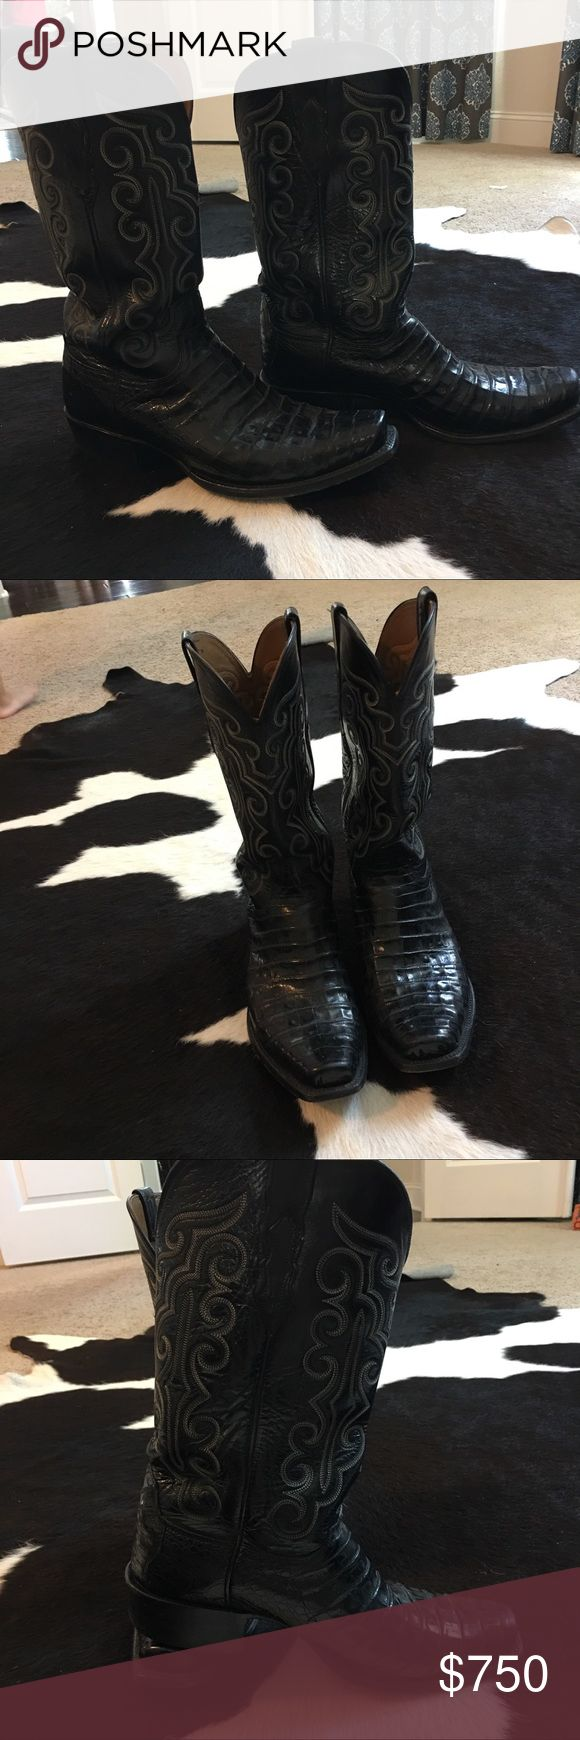 Luchese Caiman boots Men size 11 Caiman leather cowboy boots luchese Shoes Boots